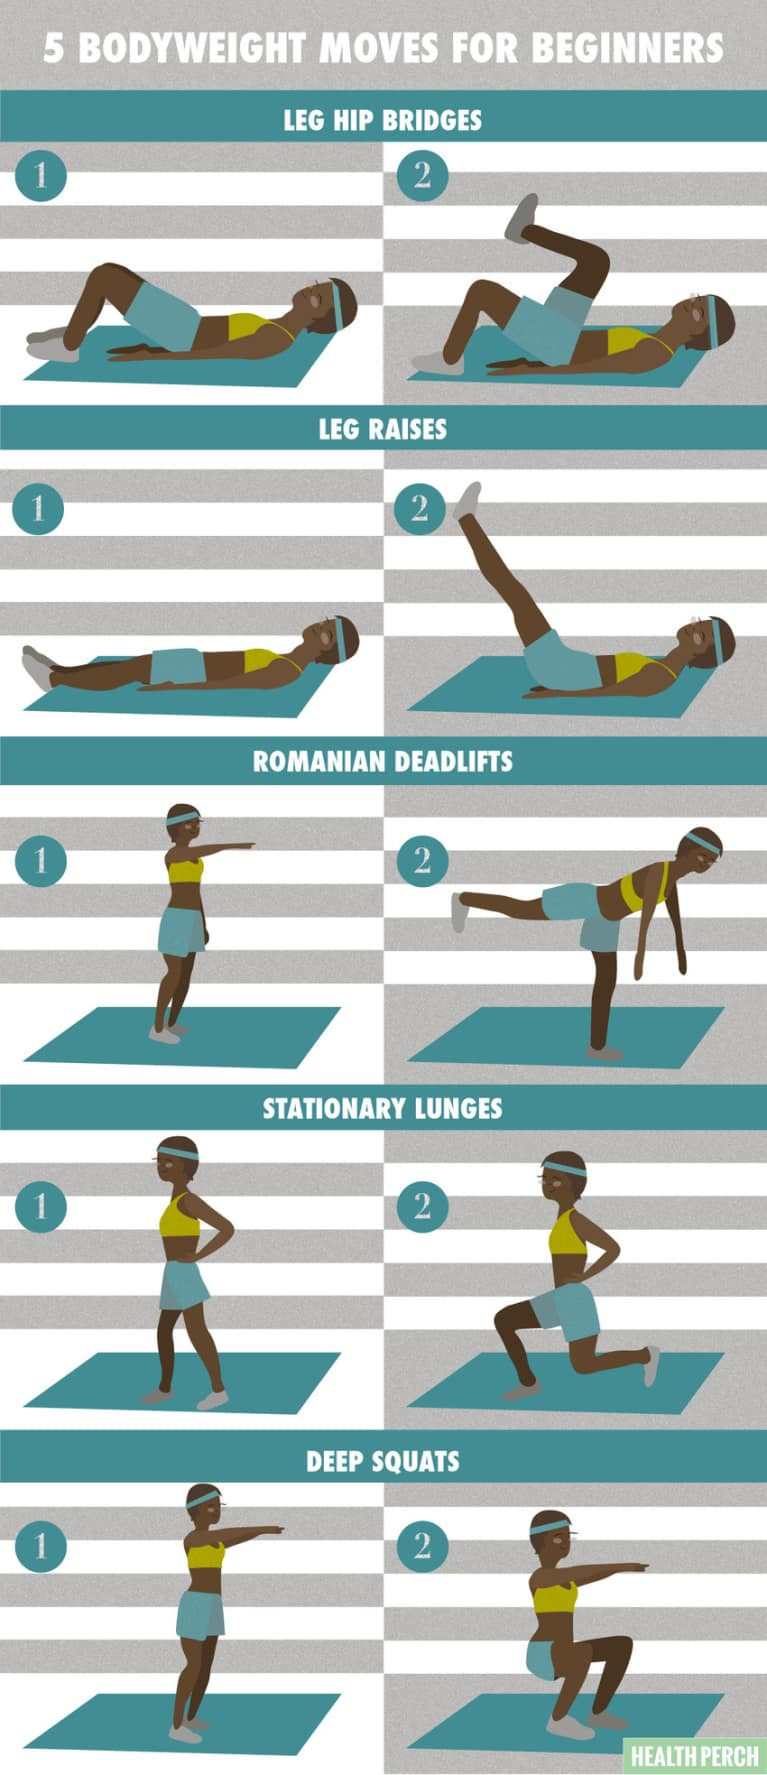 Feng Shui Guide For Beginners 10 Essentials For A Healthy Body And Mind: Body-Weight Moves For Beginners (Infographic)